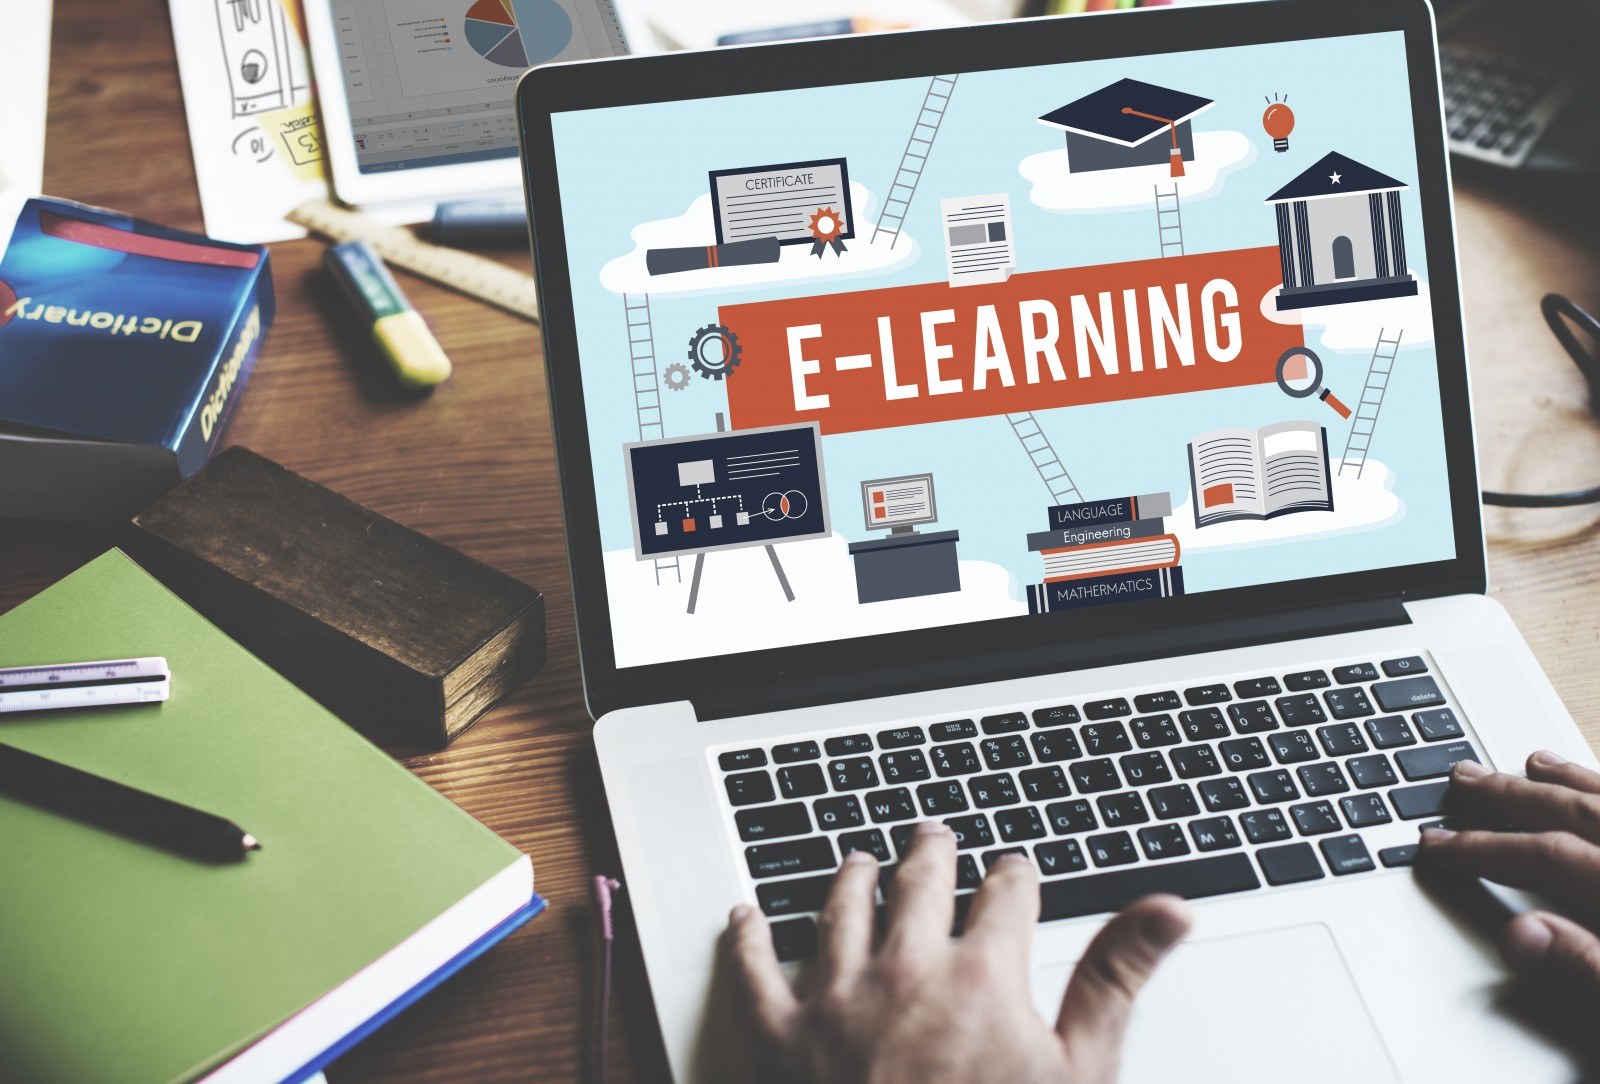 E-LEARNING: A BRAVE NEW WORD